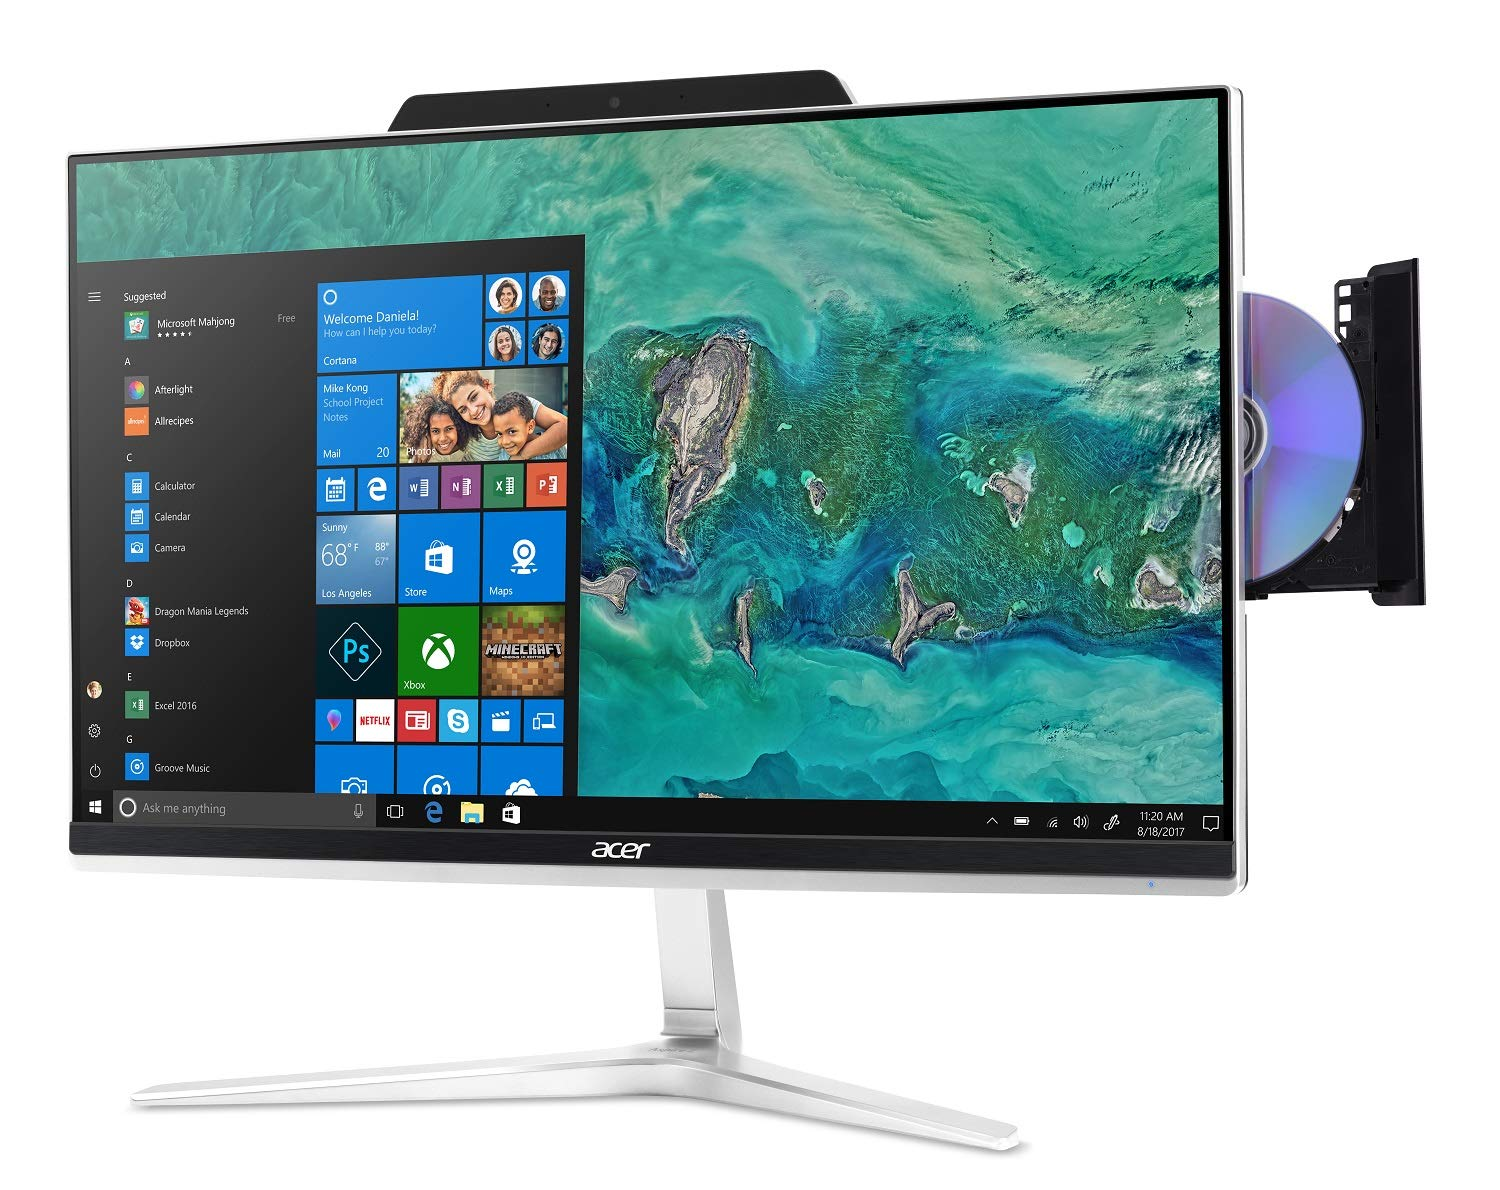 "Acer Aspire Z24-890-UR11 AIO Touch Desktop, 23.8"" Full HD Touch, Intel Core i5-8400T, 8GB DDR4 + 16GB Optane Memory, 1TB HDD, Windows 10 Home [Intel Core i5-8400T] $637"